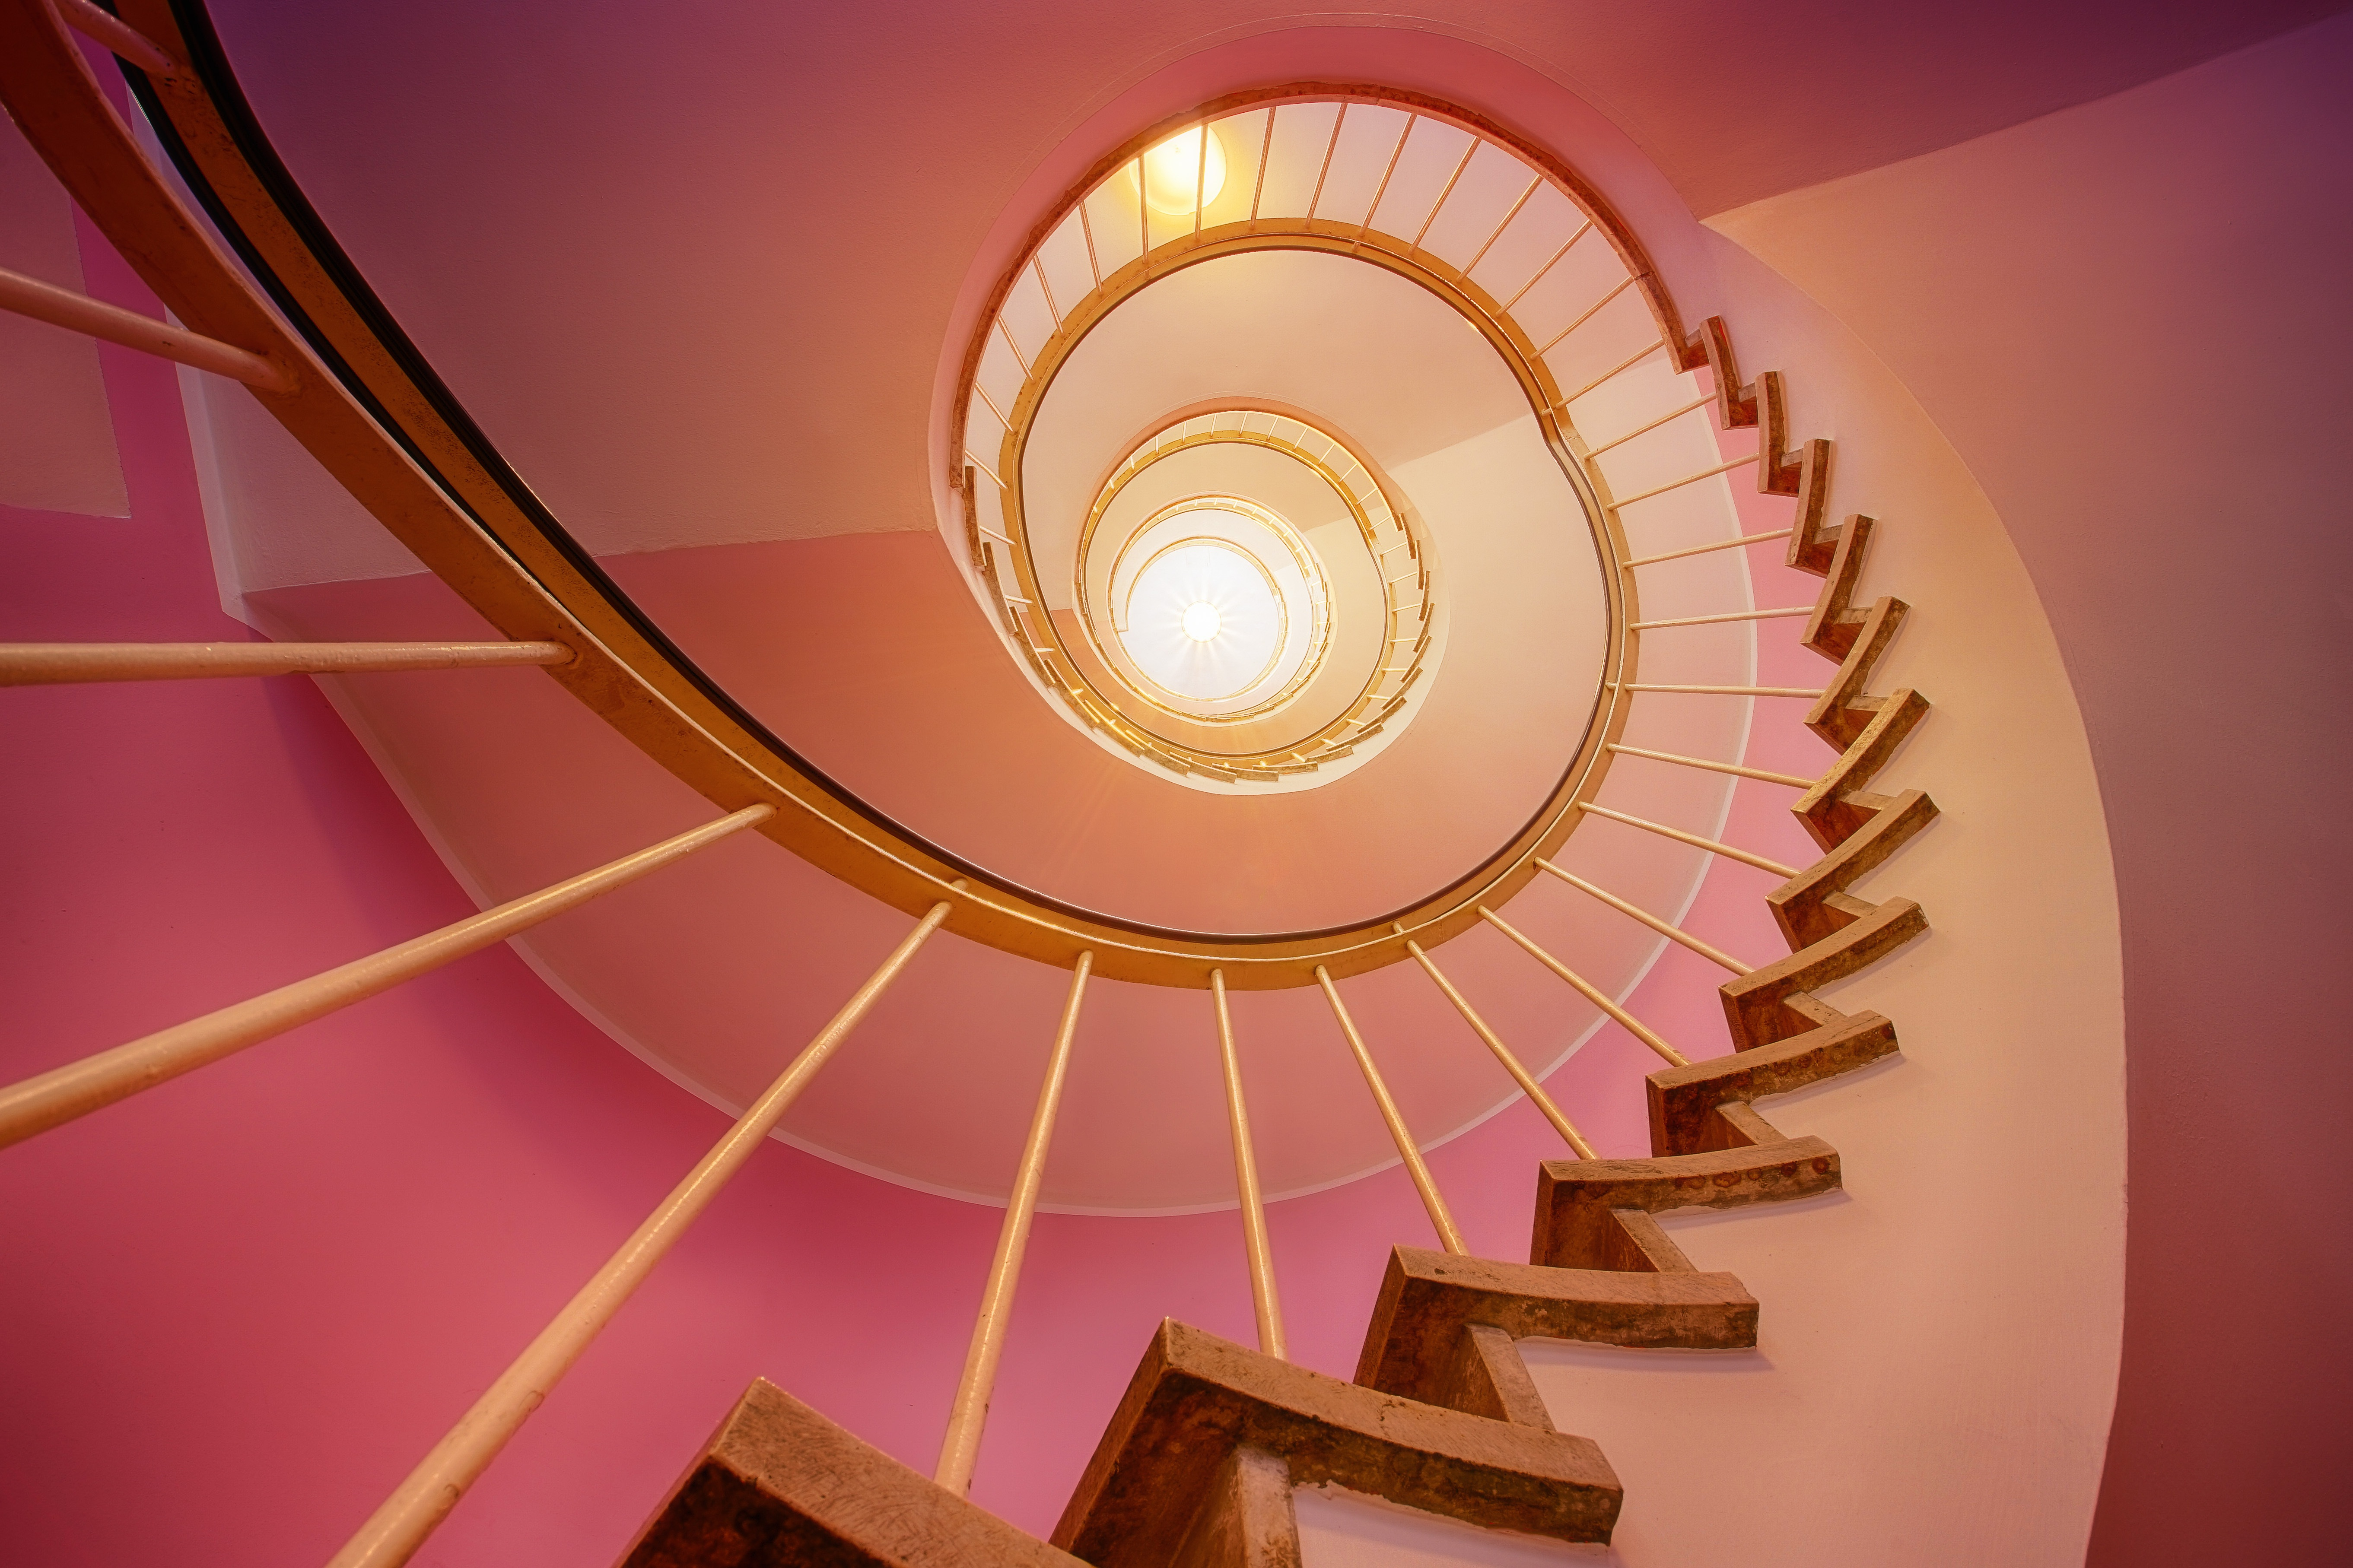 Spiral staircase 56125